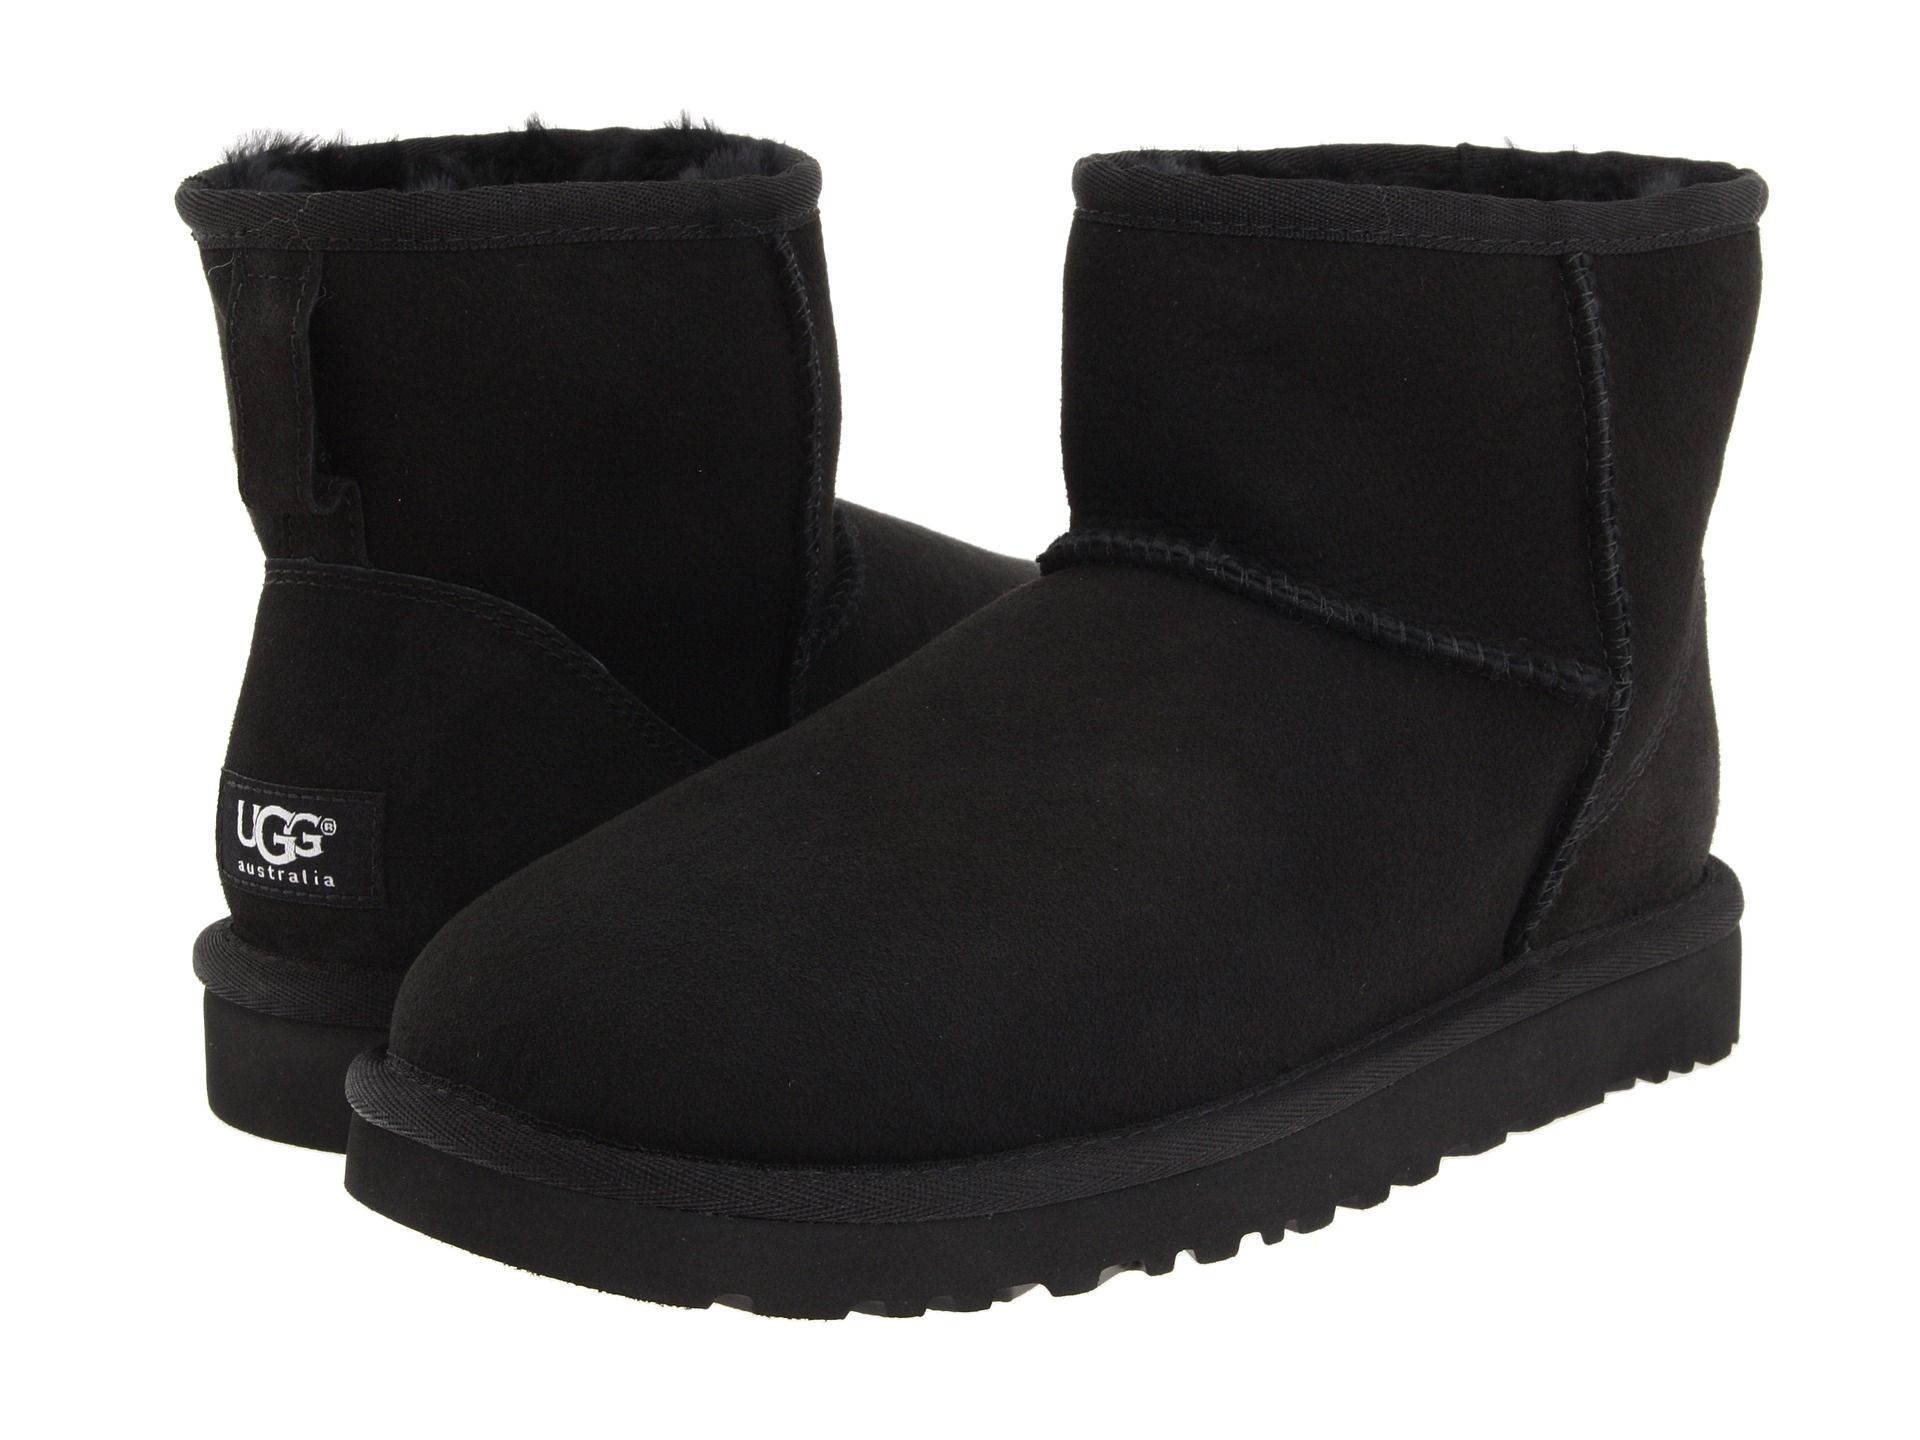 2015 Lace Up Ugg Boots|UGG Boots Uk, Cheap Uggs Hot